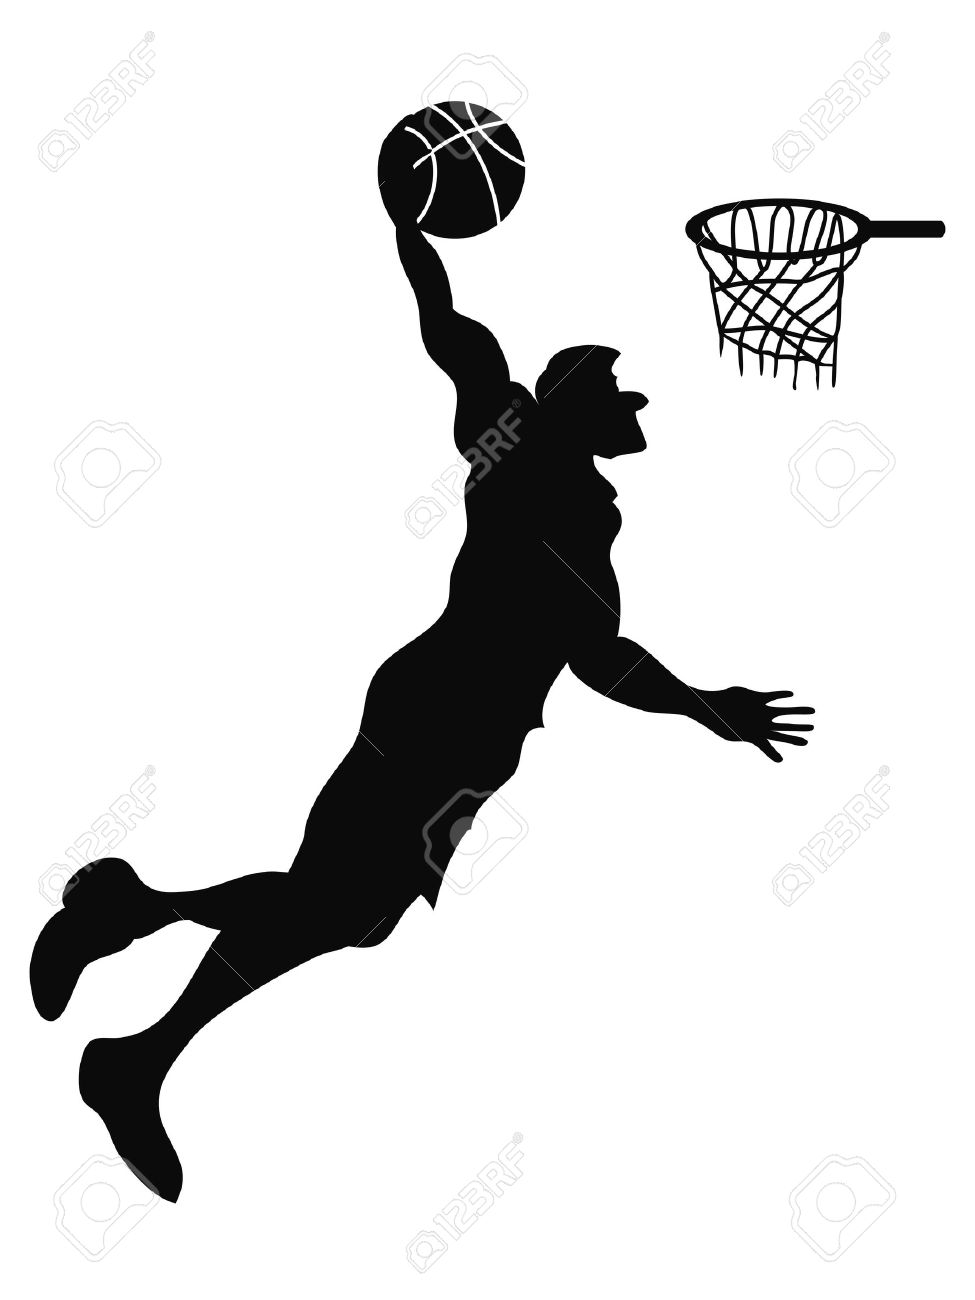 isolated the silhouette of Basketball player Slam Dunk from white...